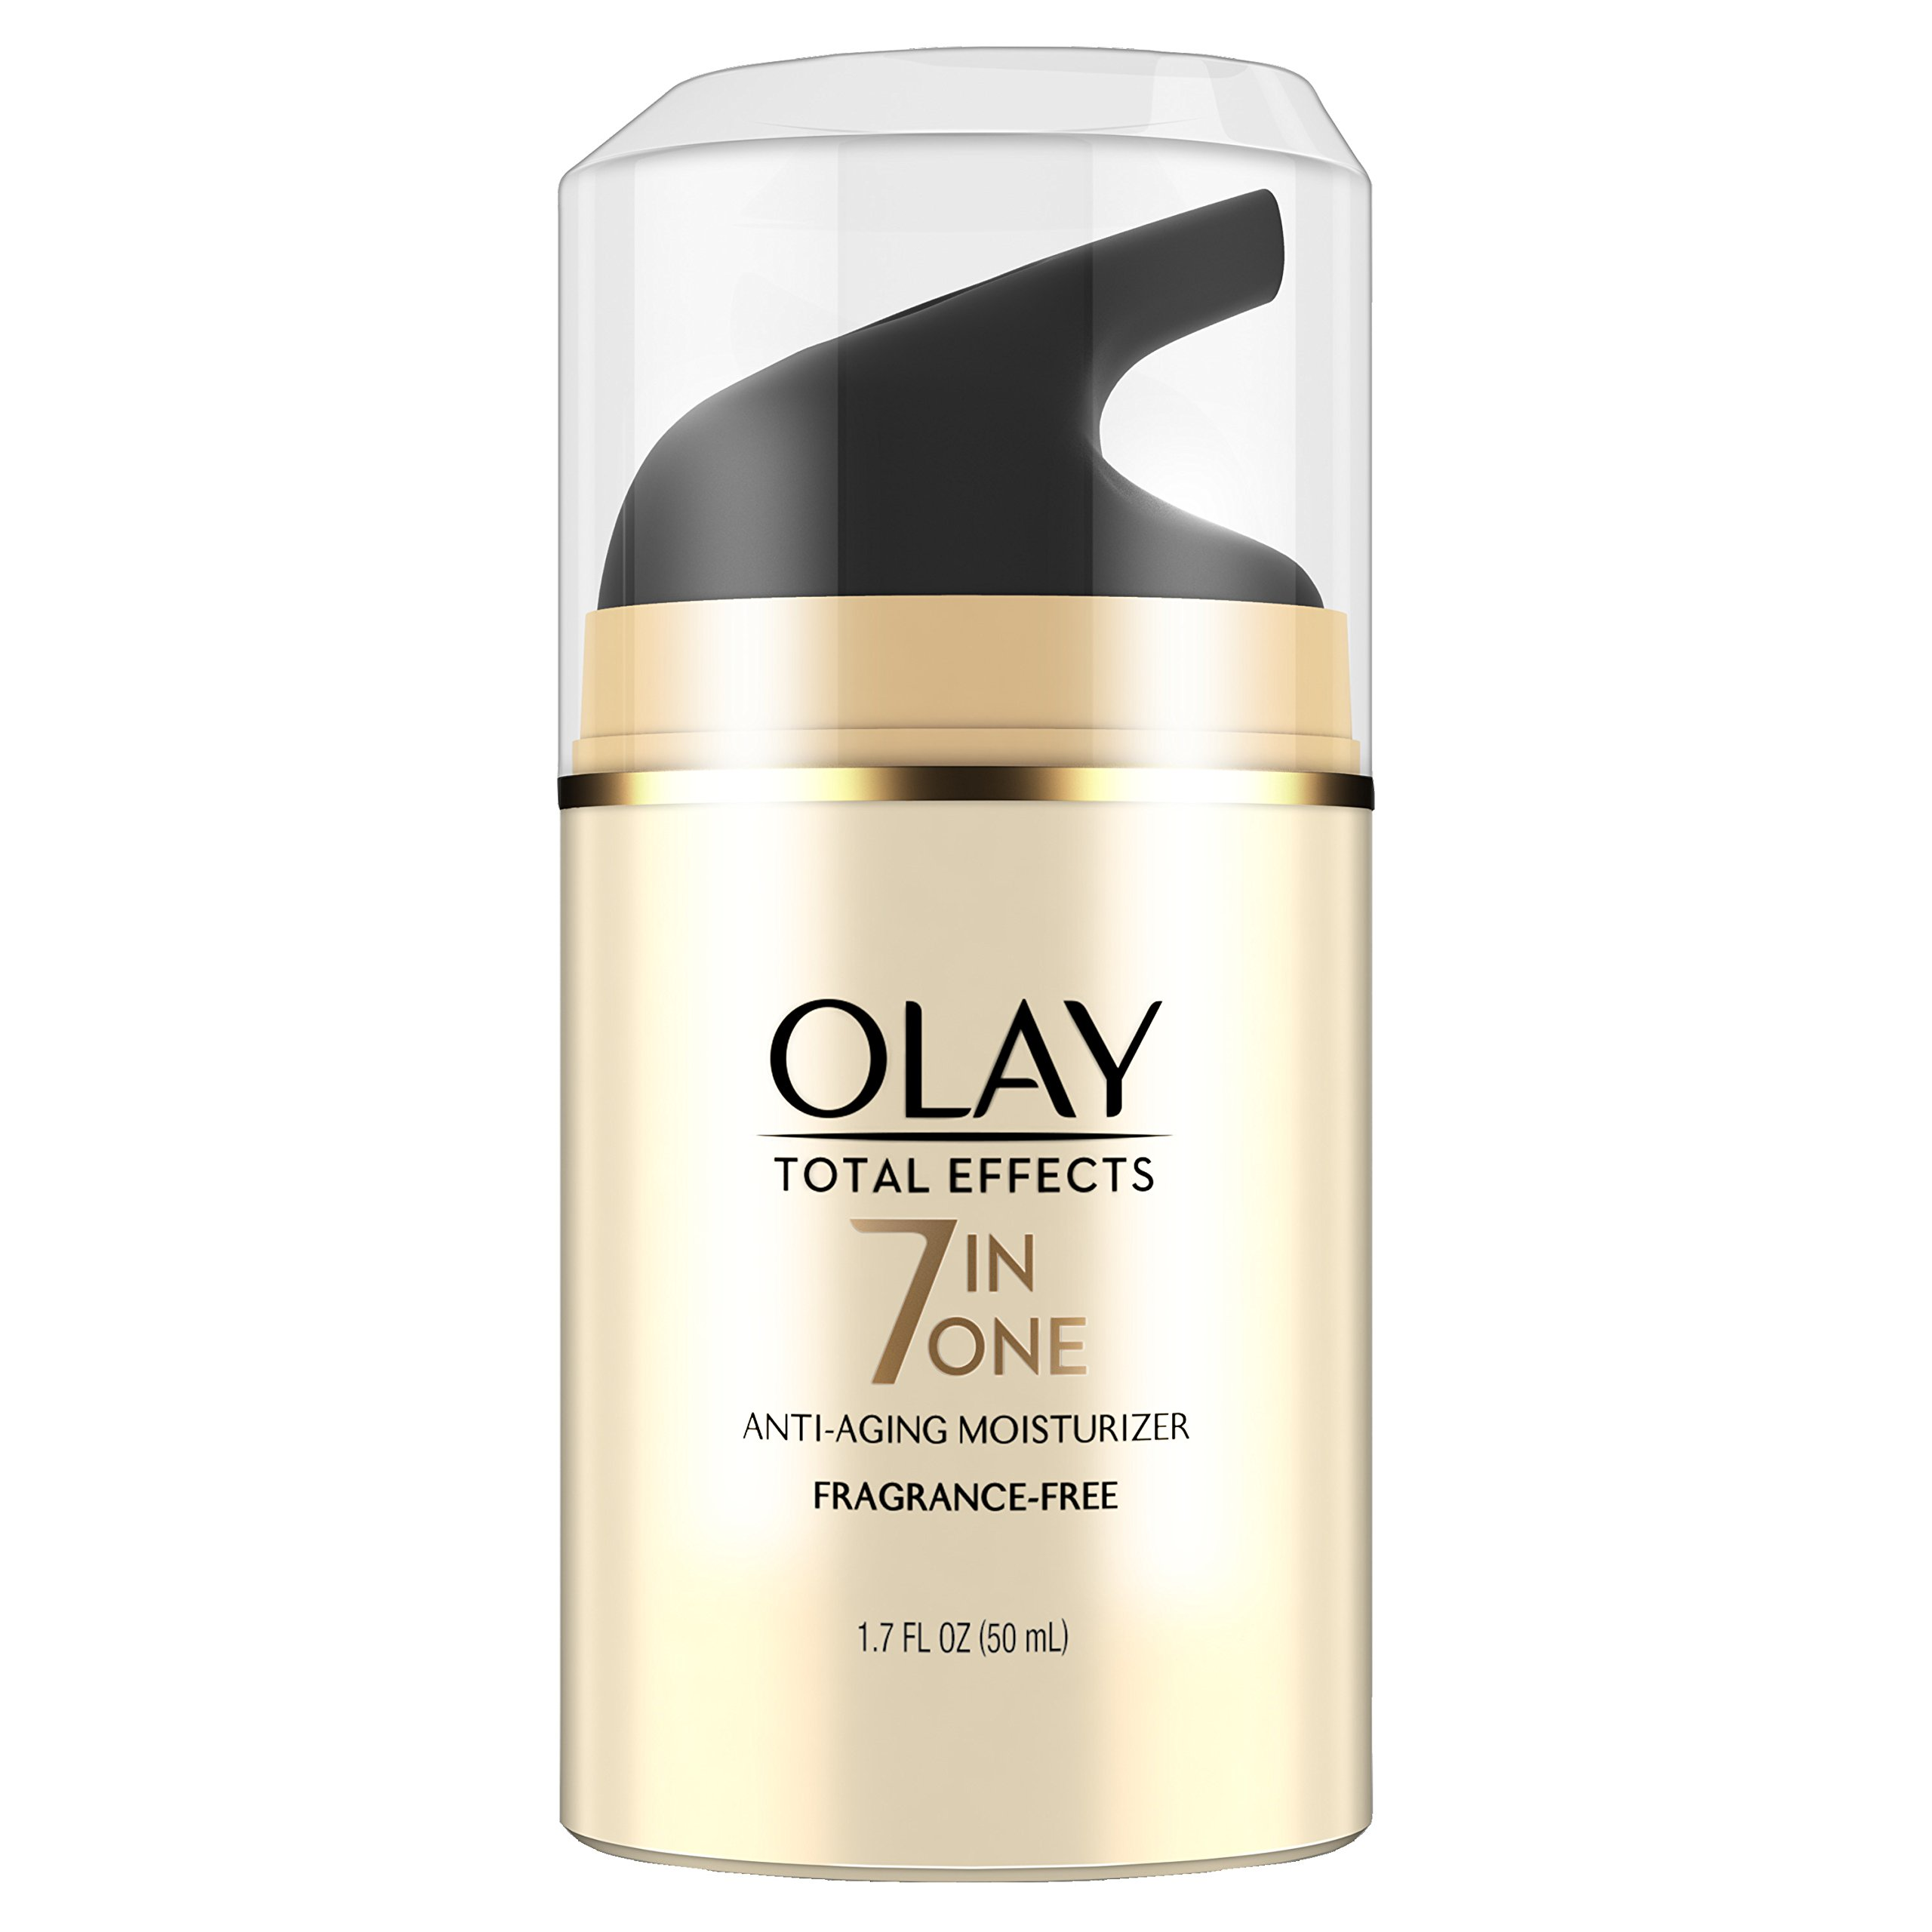 Olay Total Effects Anti-Aging Face Moisturizer, Fragrance-Free 1.7 fl oz by Olay (Image #1)